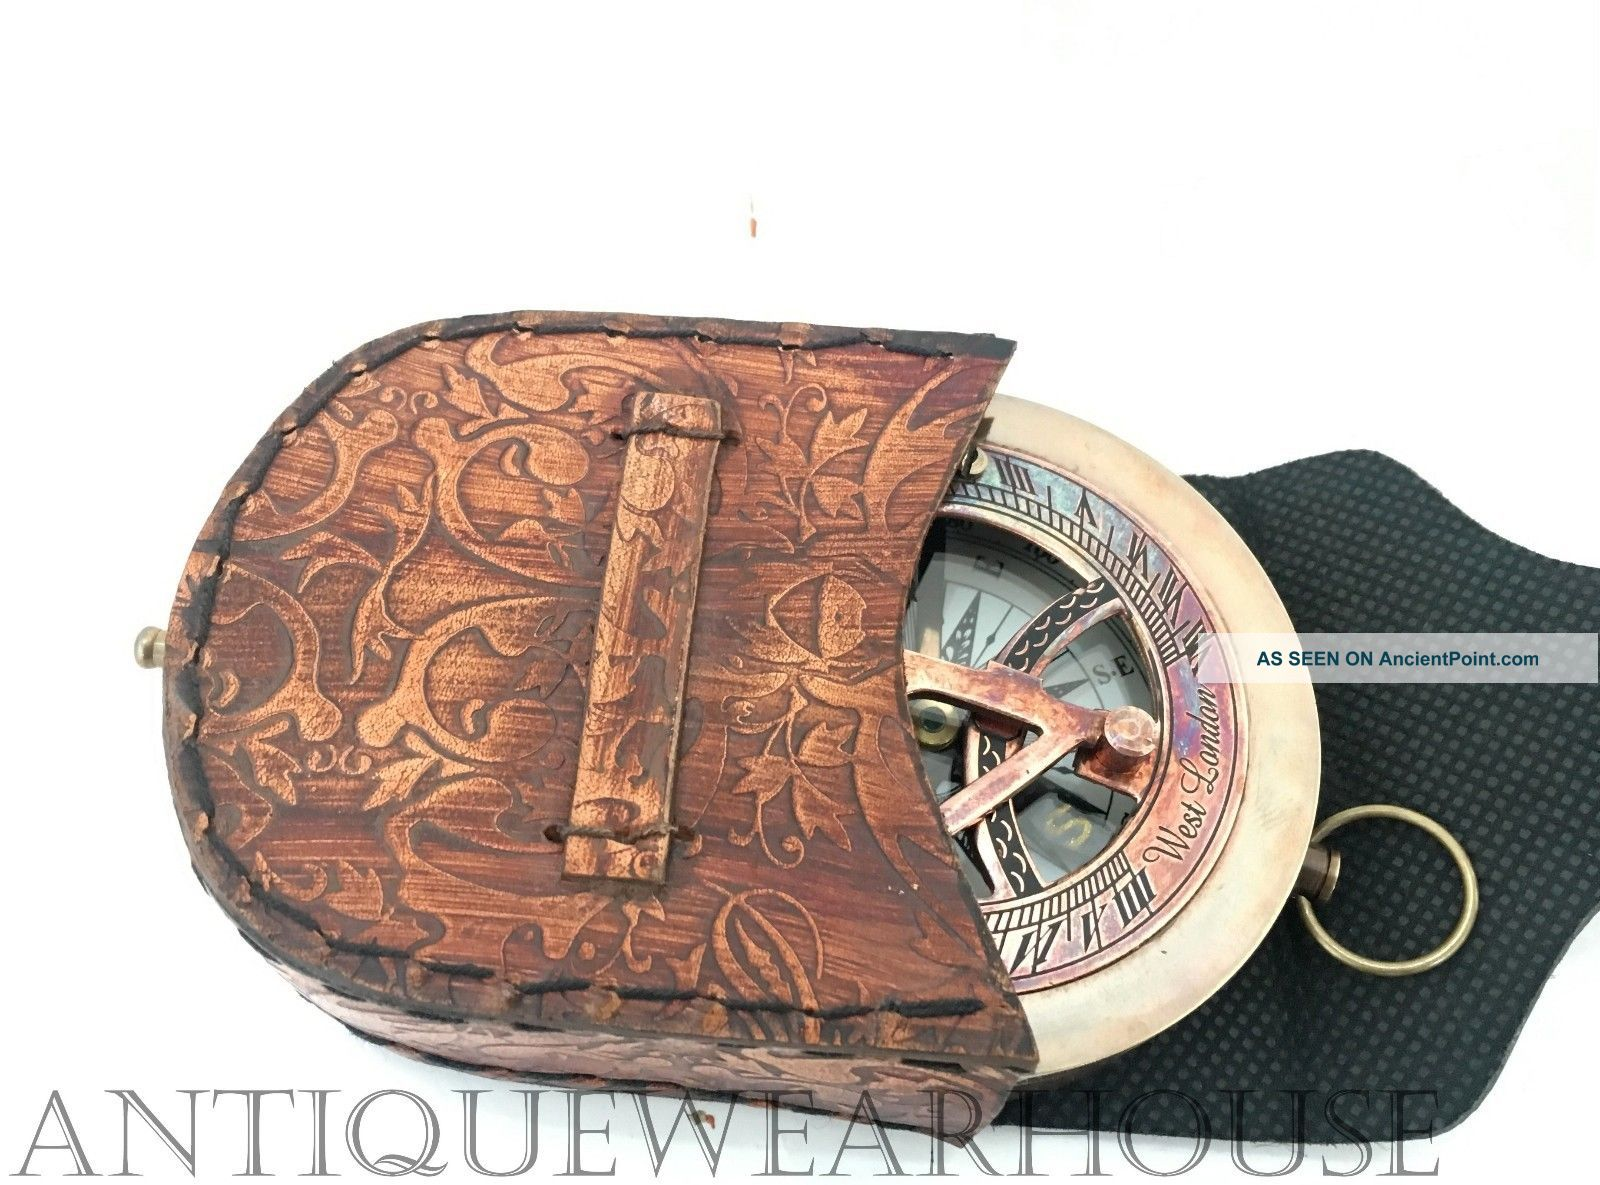 Nautical Astrolabe Antique Brass Compass With Leather Case Vintage Decor Compasses photo